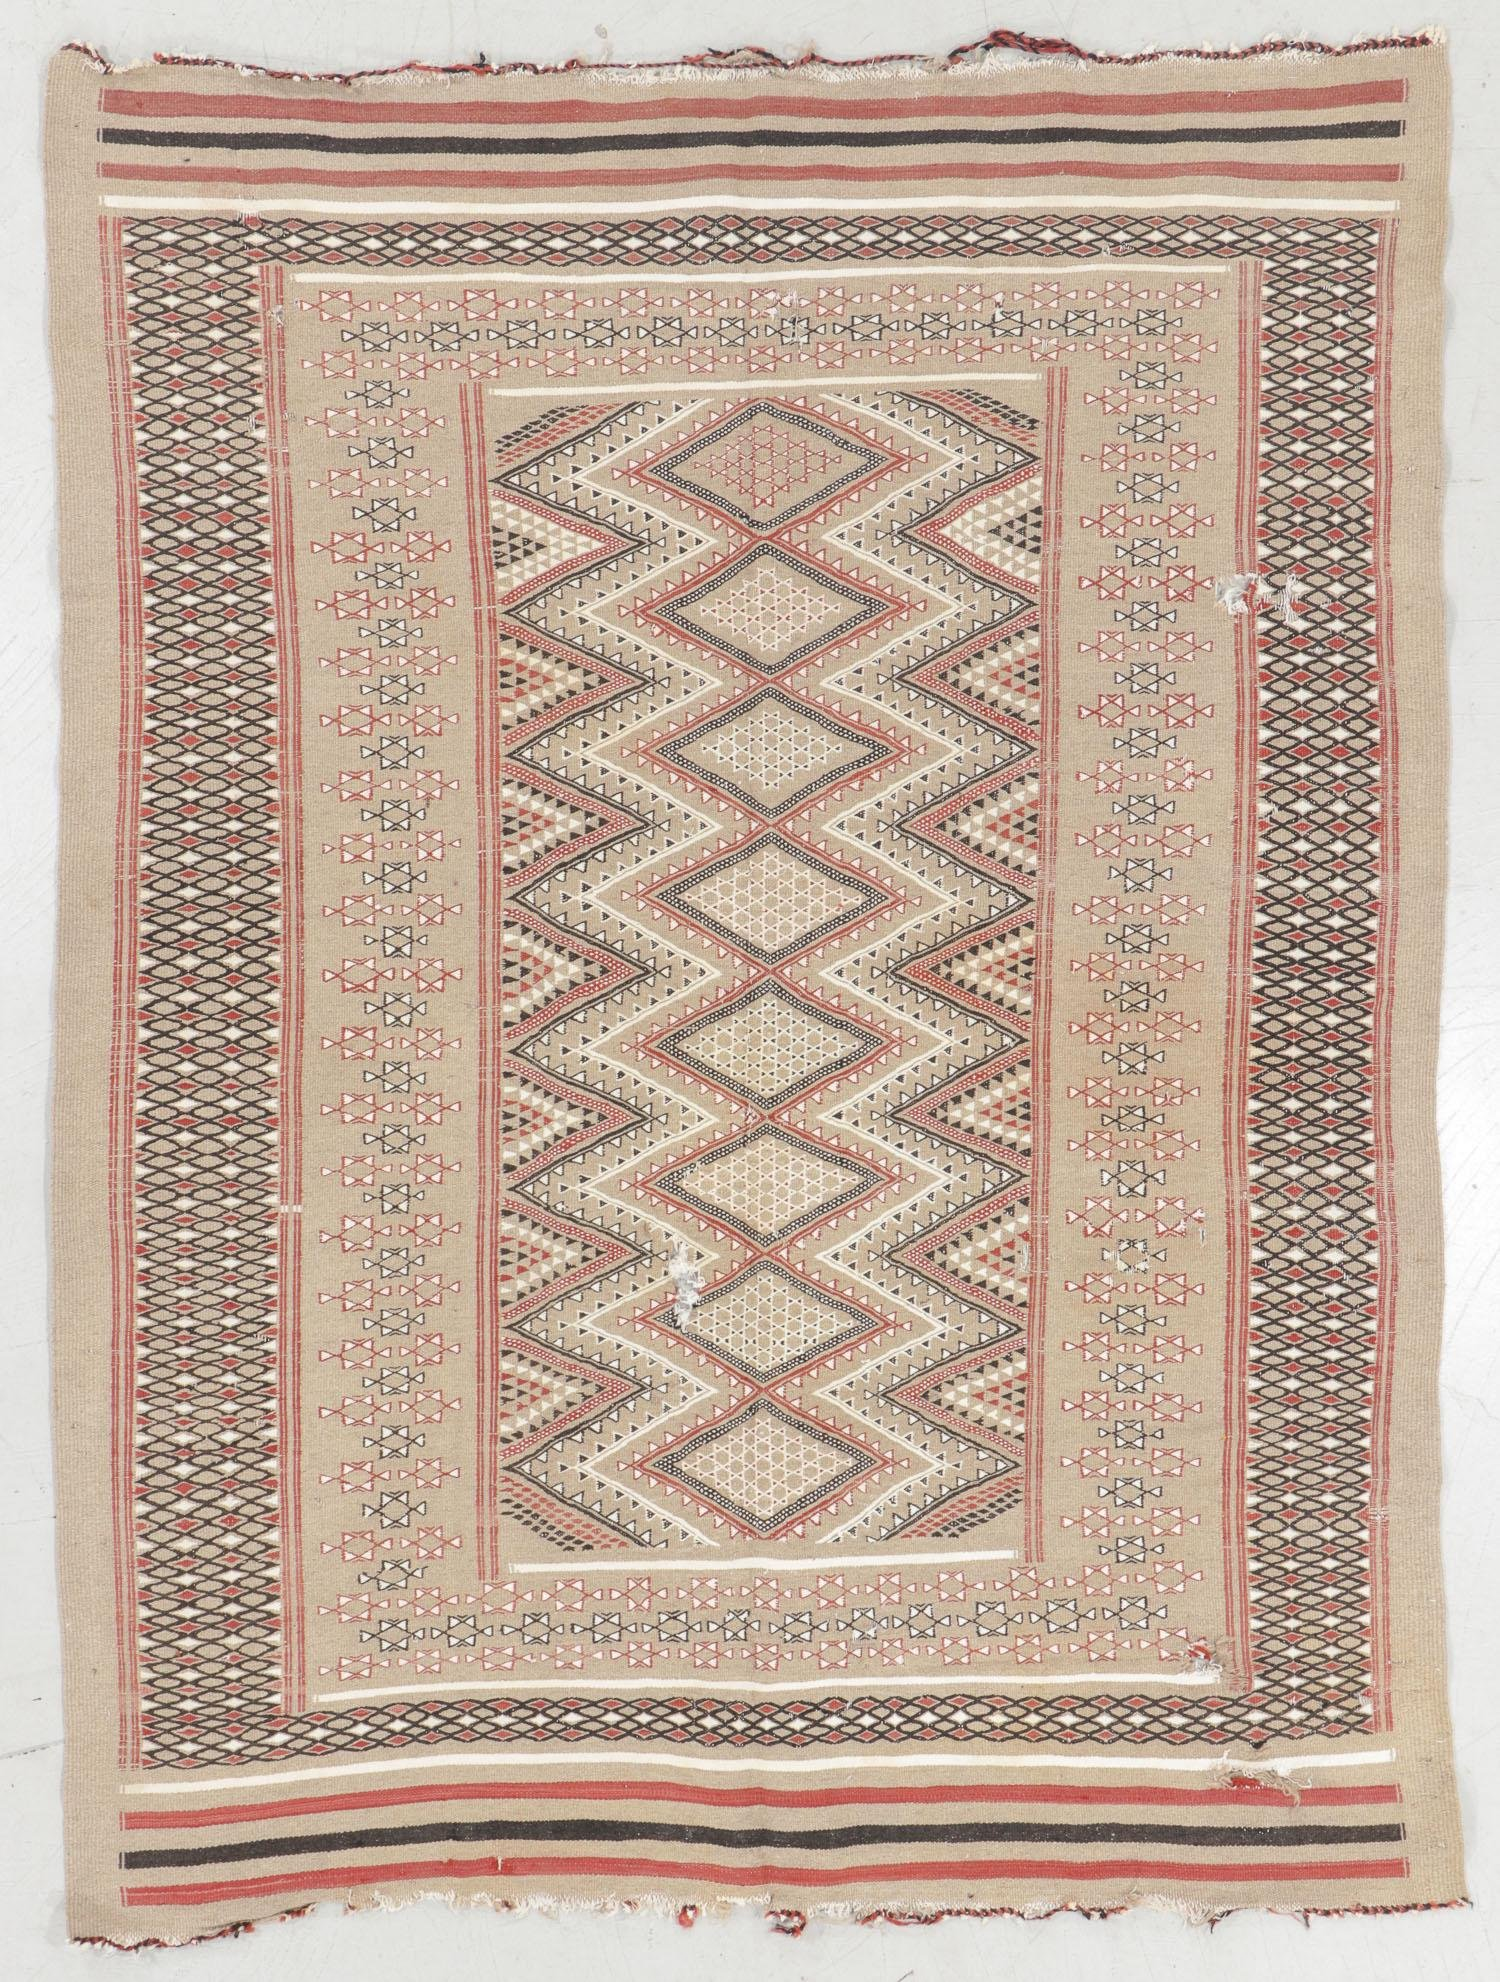 Moroccan Mixed Weave Rug, Morocco, Mid 20th C., 5'1'' x